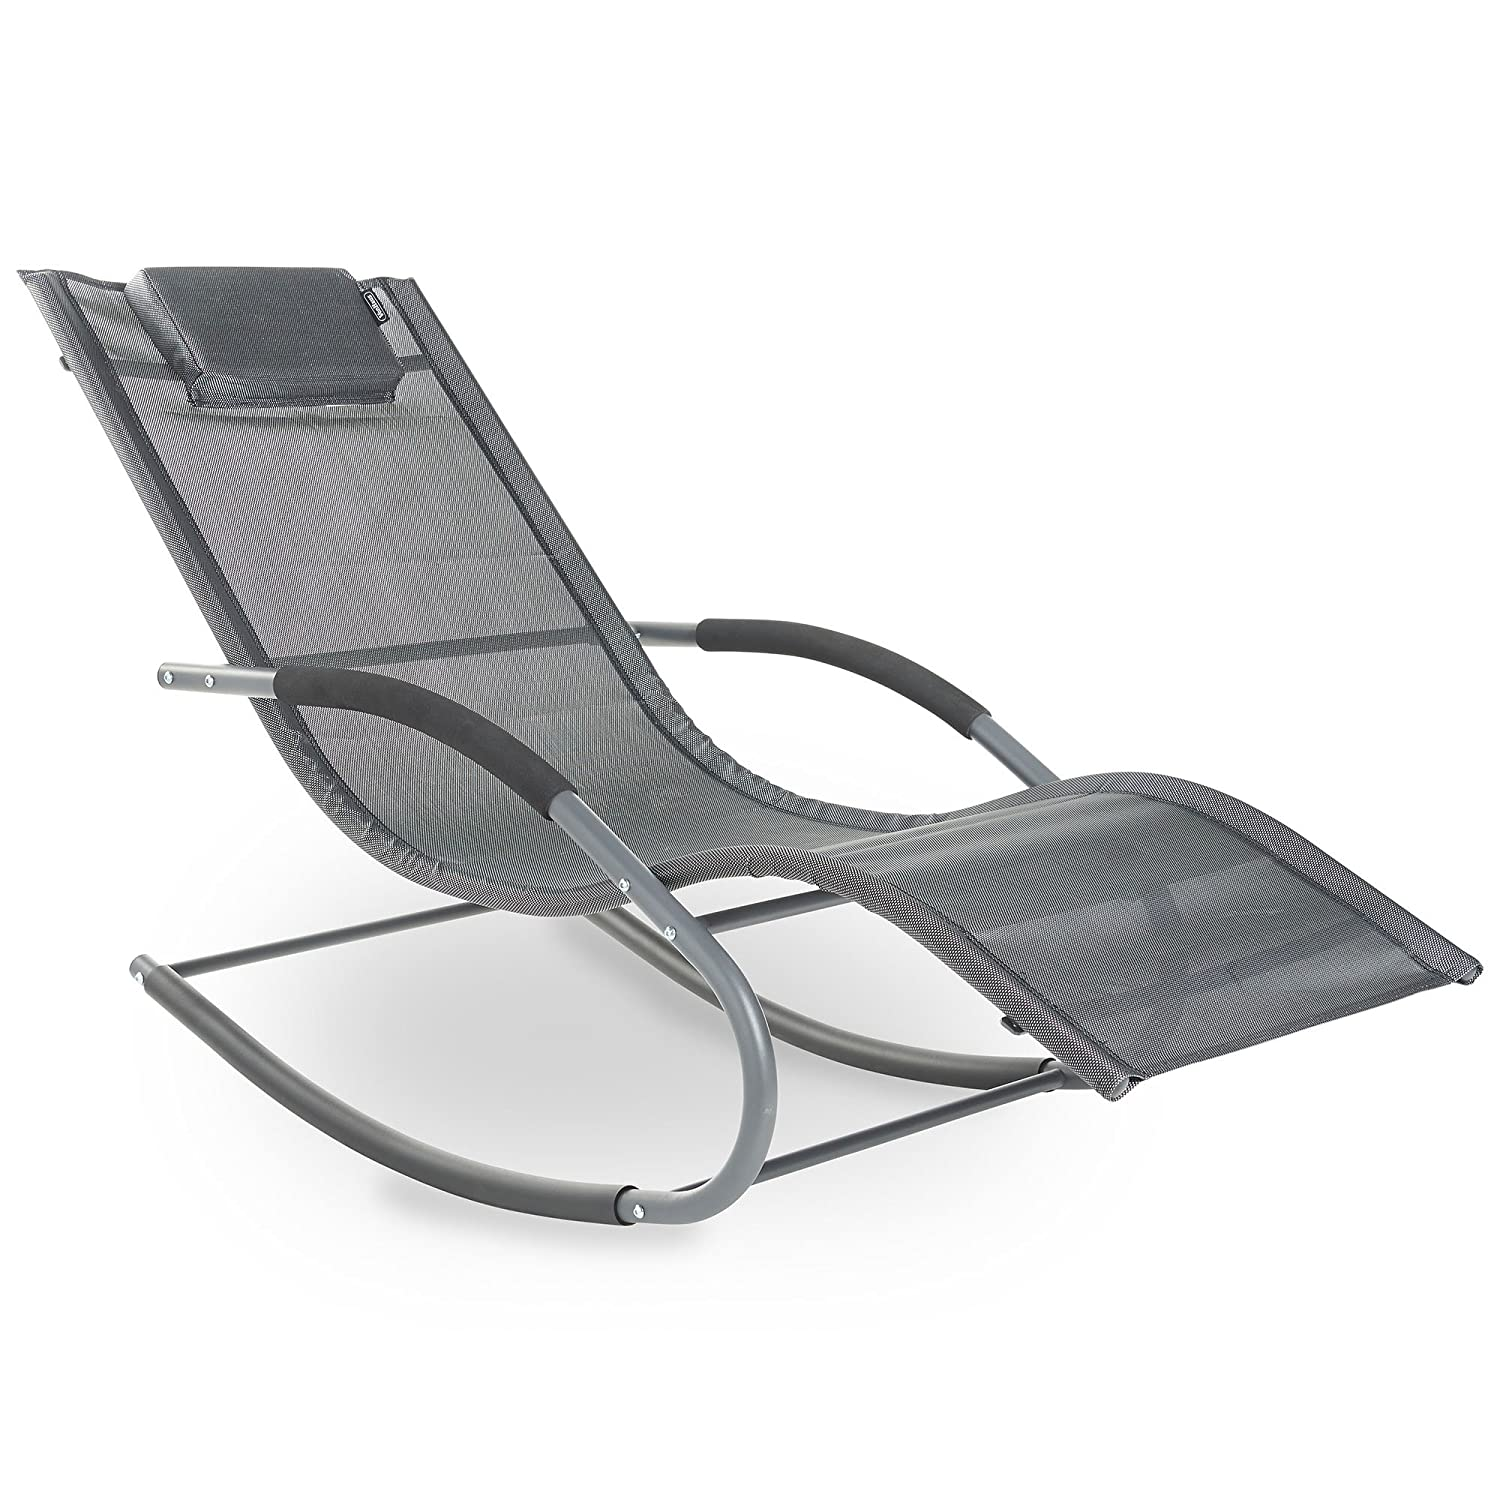 Textoline Rocking Sun Lounger Chair Relaxing Outdoor Furniture